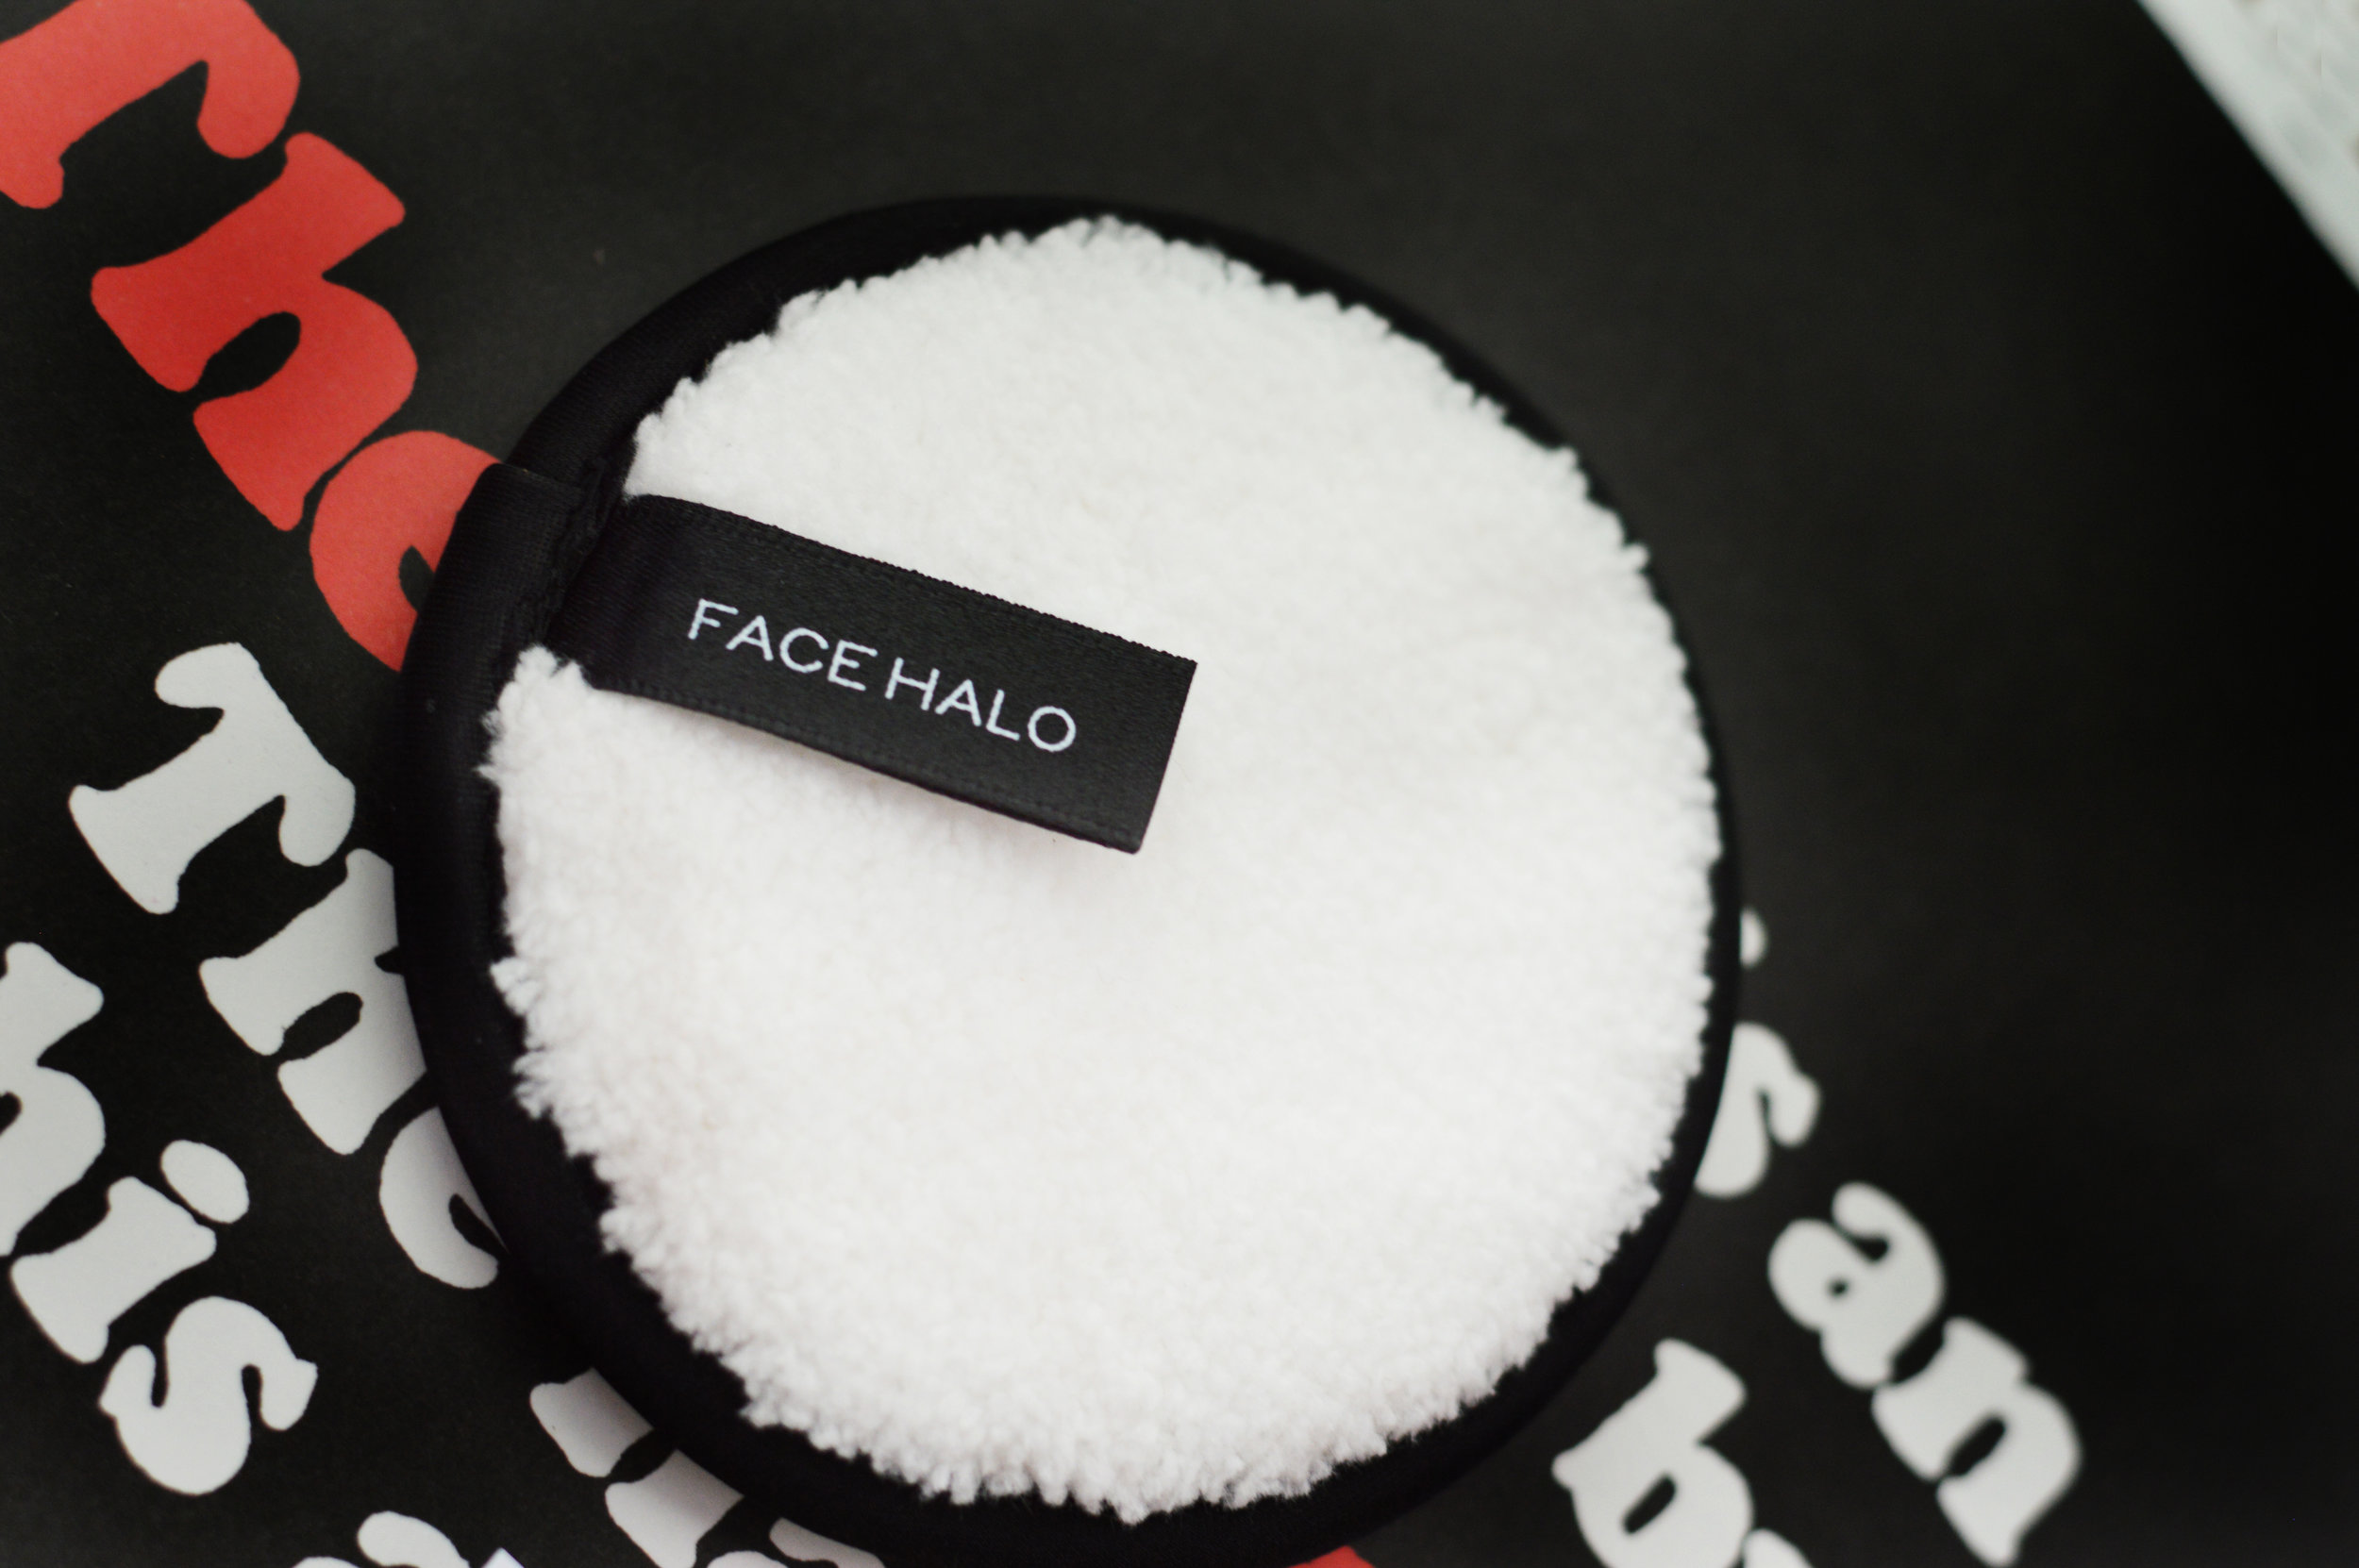 chloe morello face halo review